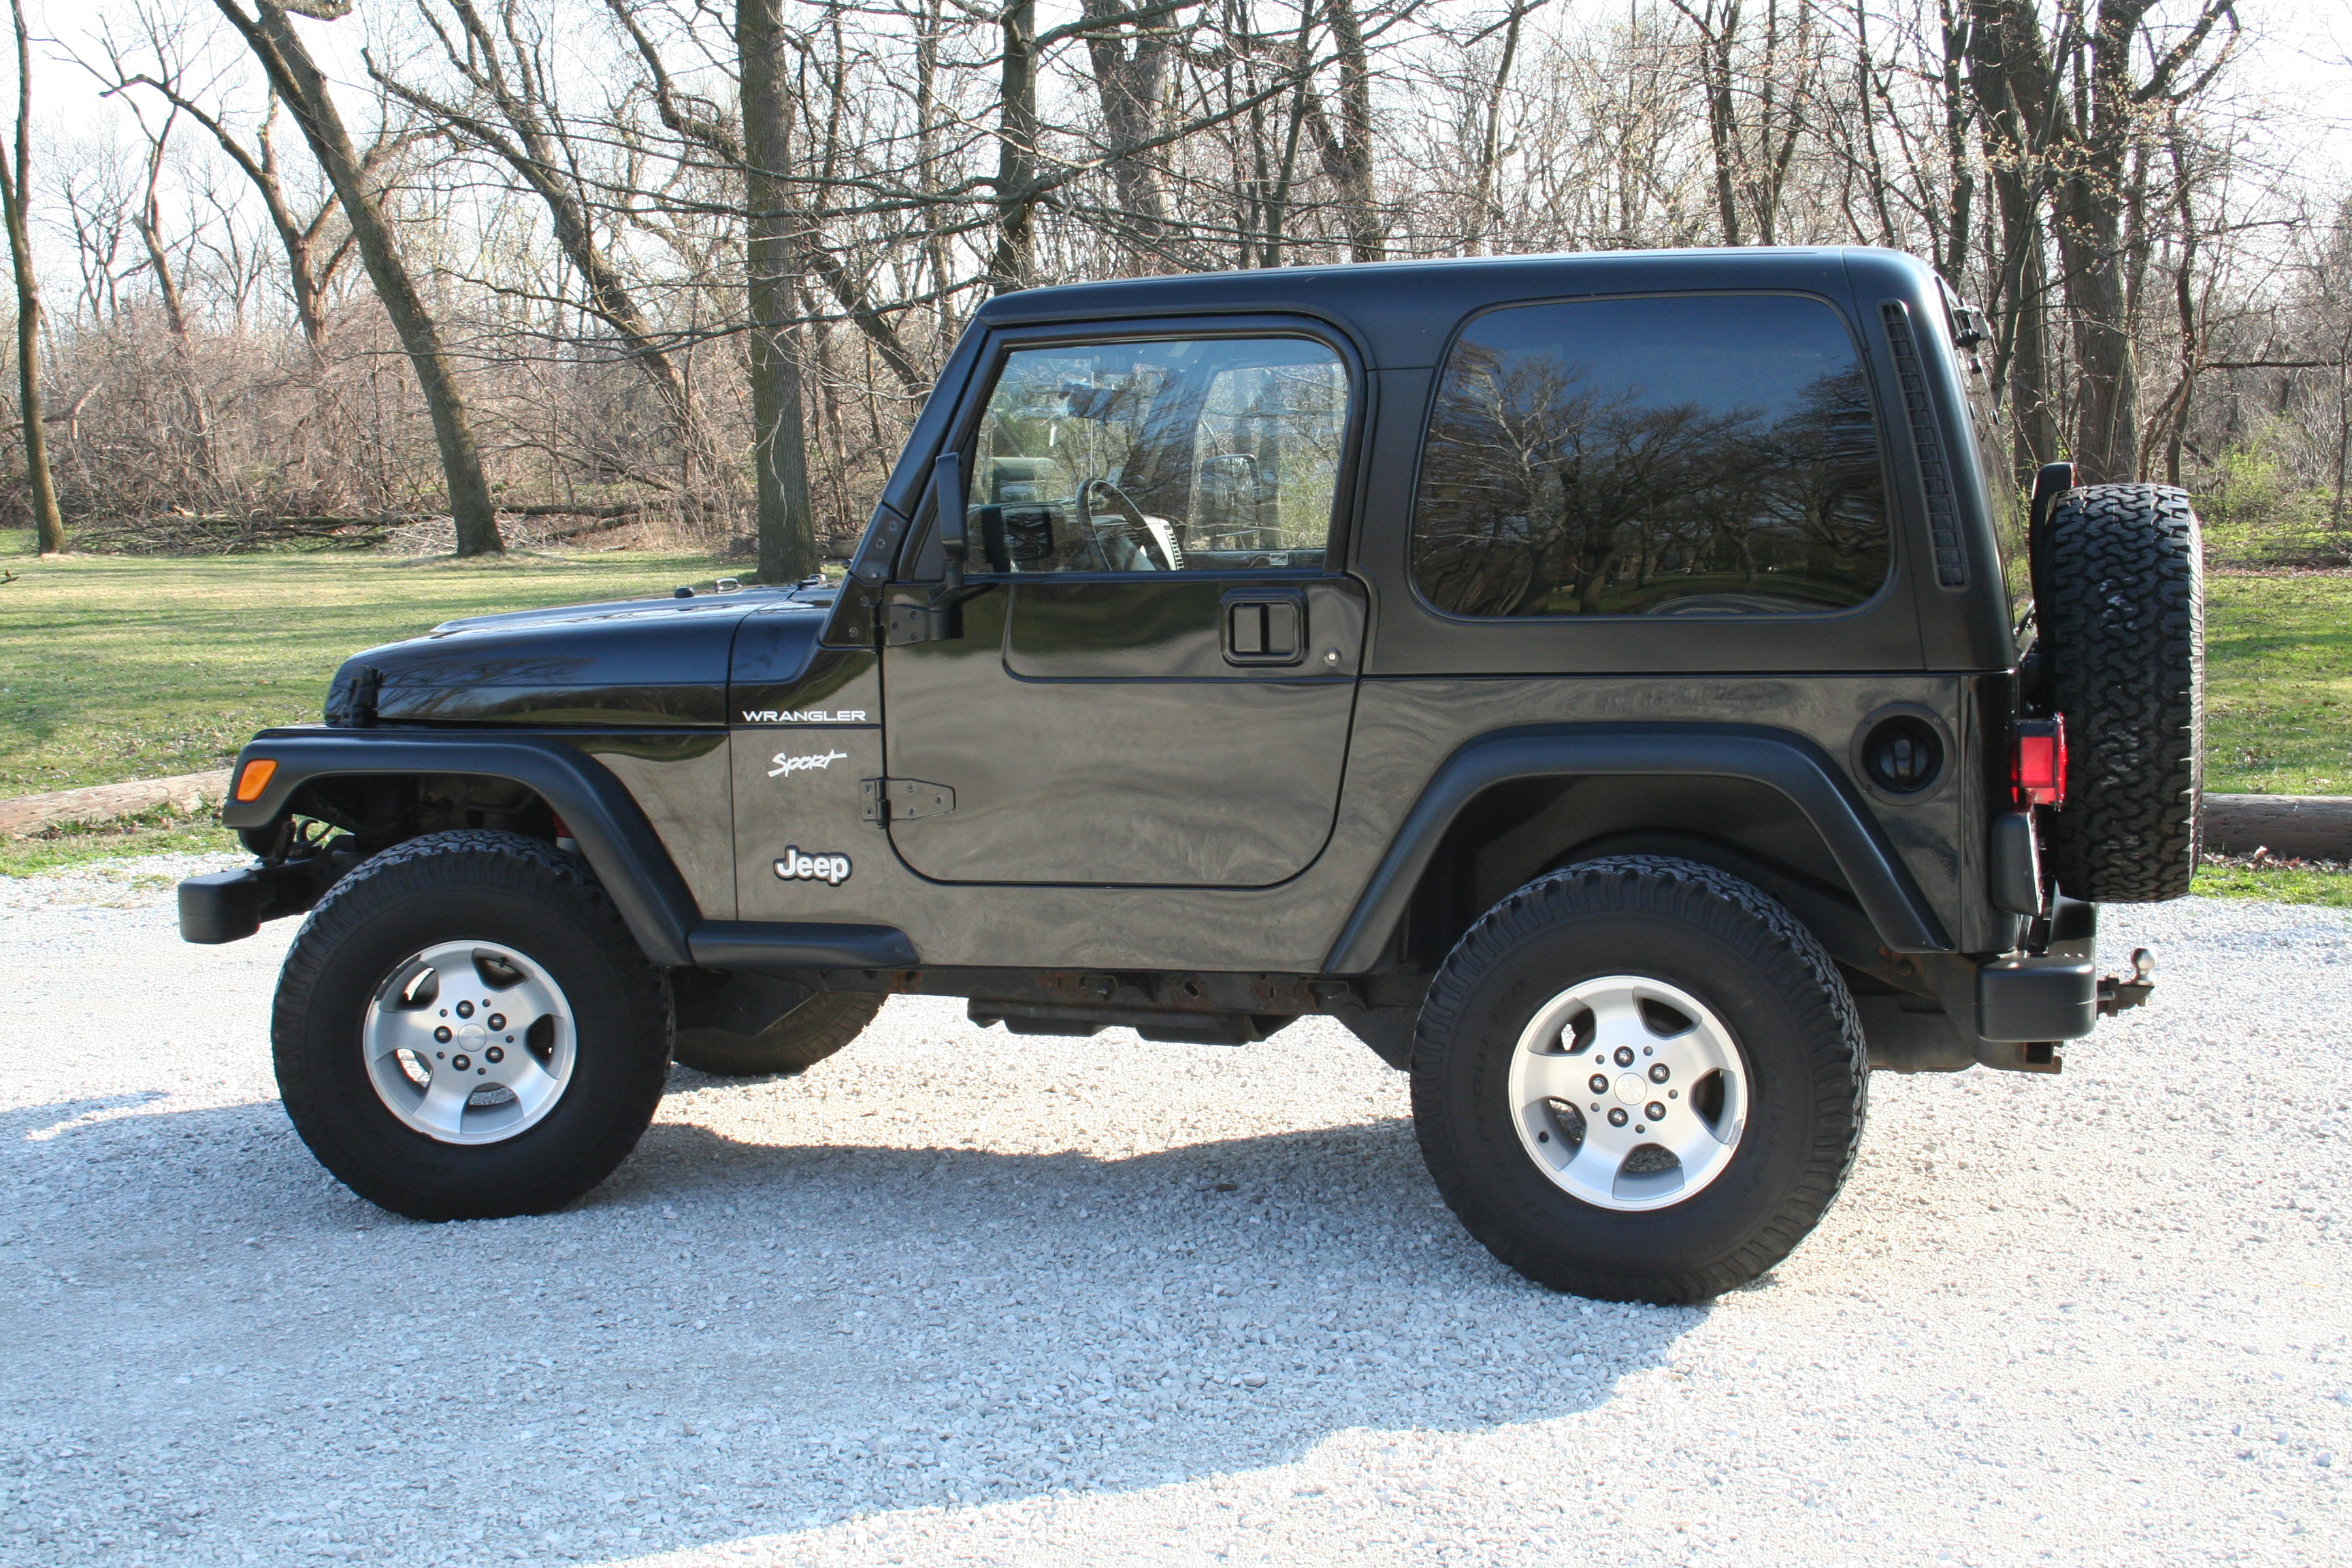 jeeps jeep doors first doesn sirius more have jkowners dealer wrangler it and offered com sale bluetooth sport top ready for selling any hardtop door above premium model jk price soft if forum trade t